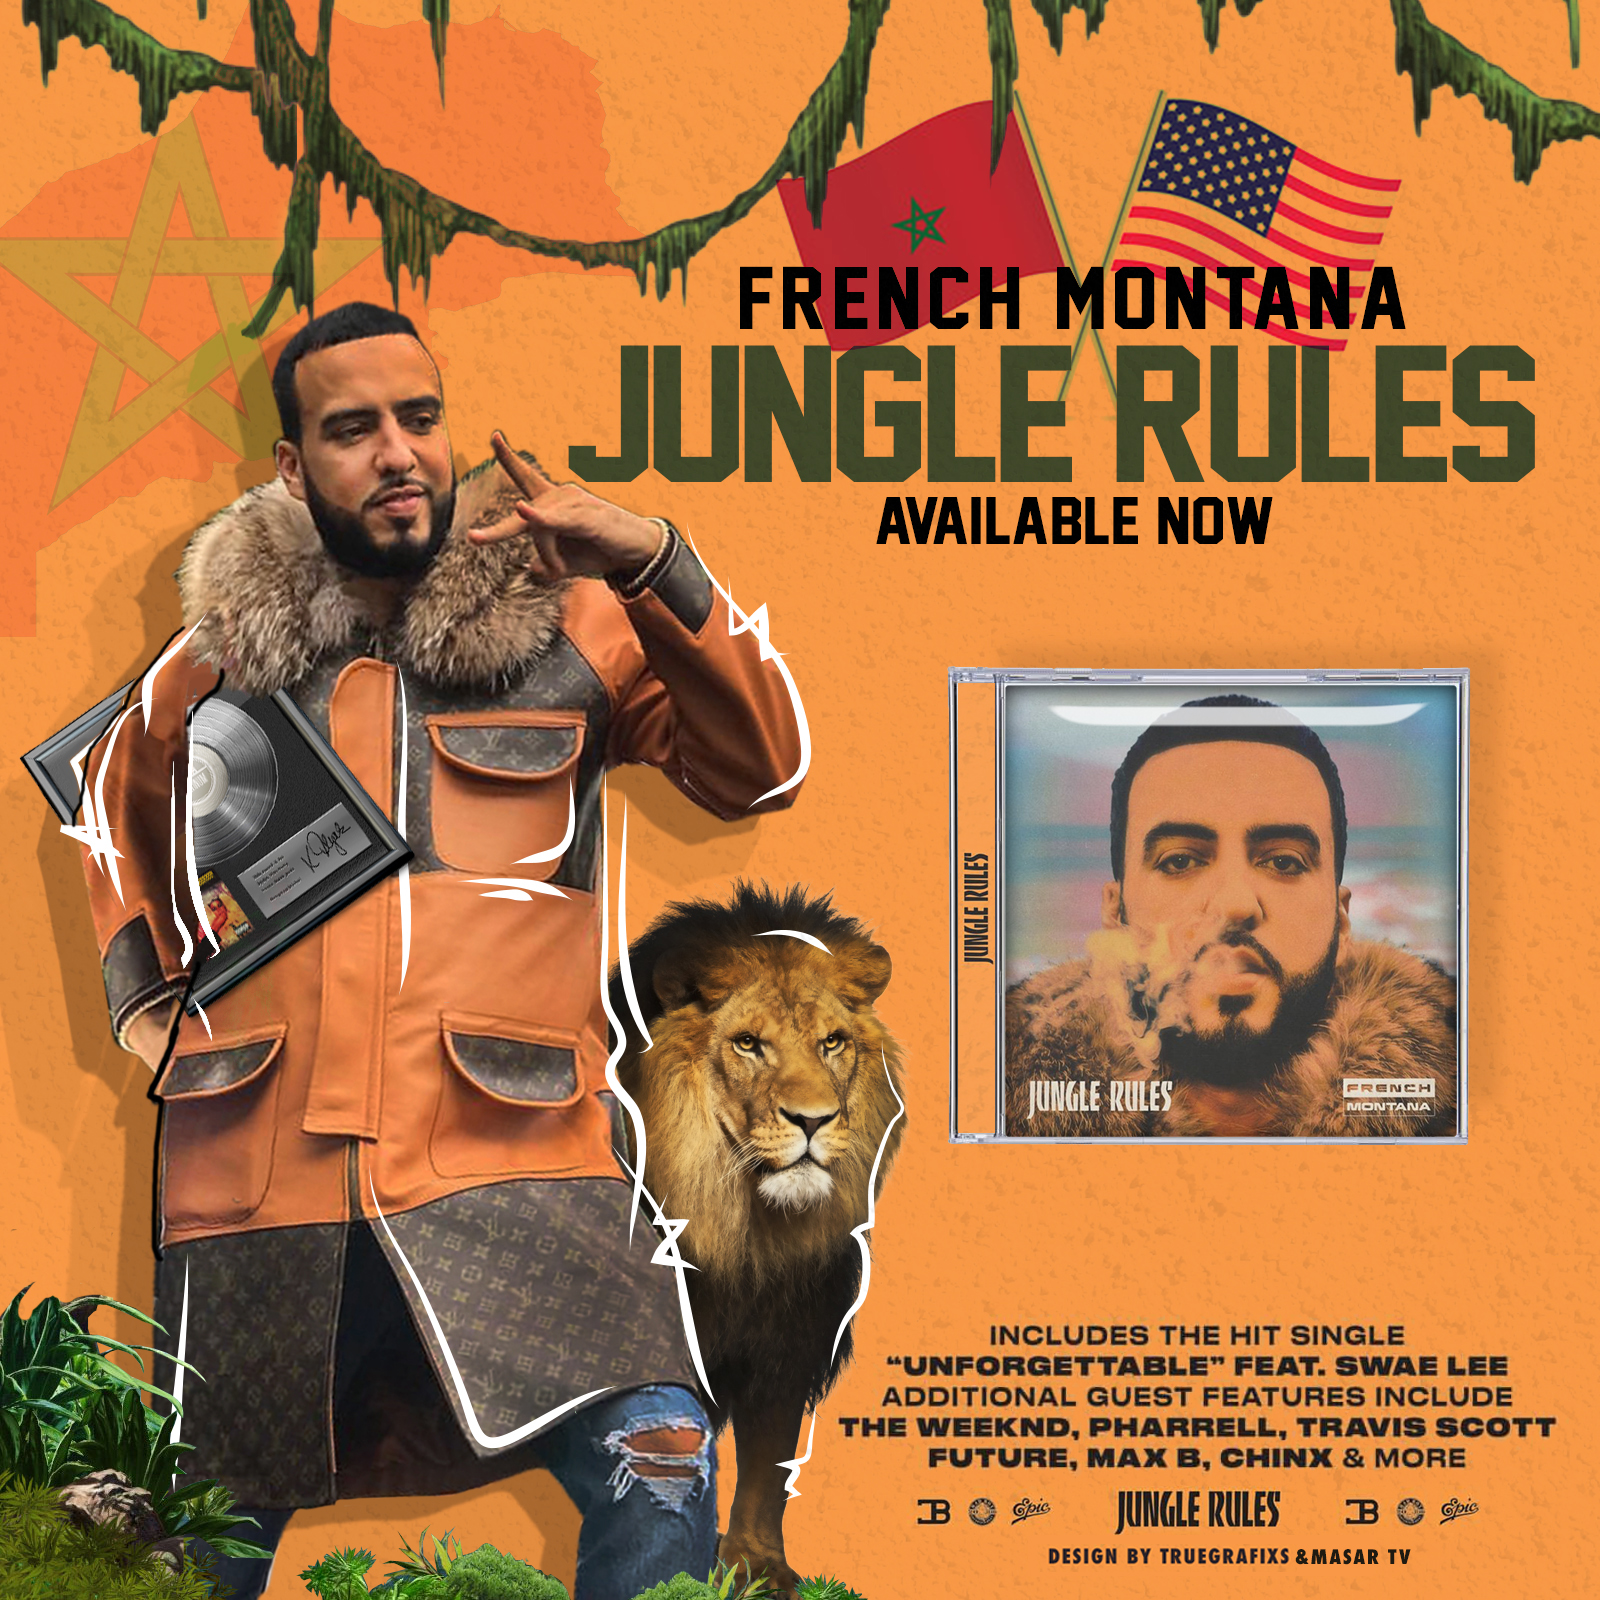 truegrafixs masar tv french montana max b jungle rules weeknd